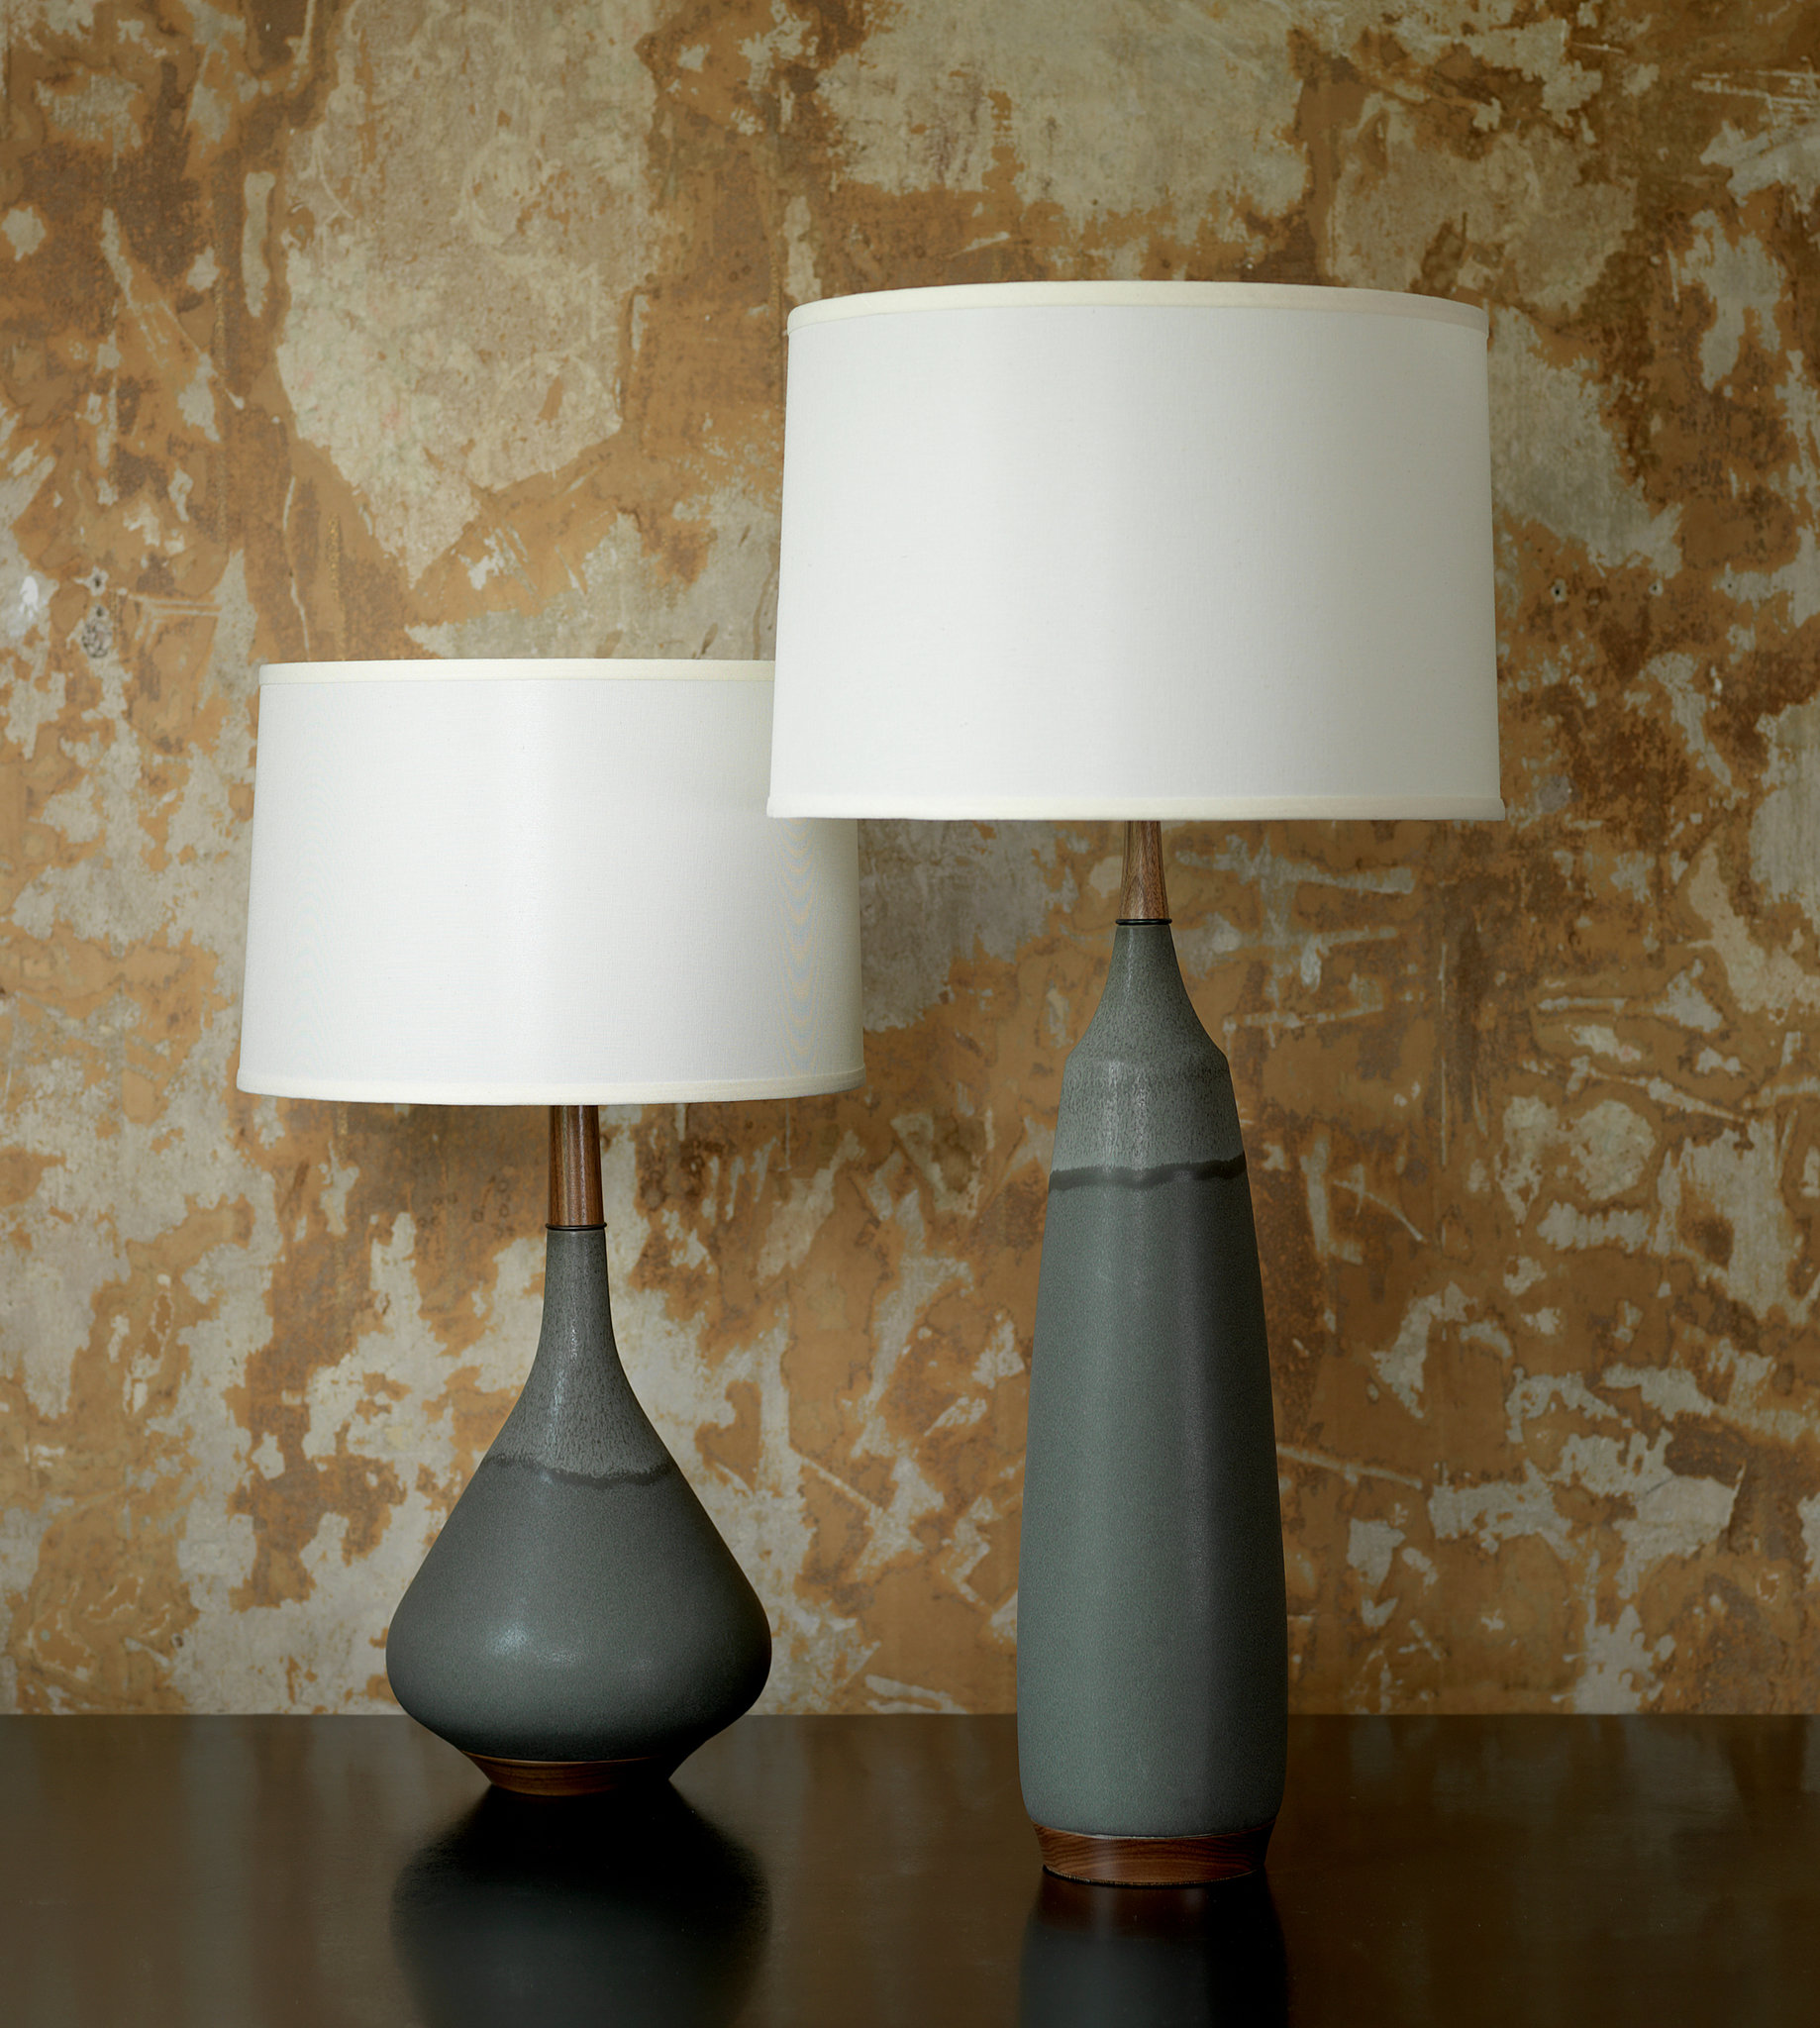 Roar And Rabbit Ripple Table Lamp £139, West Elm